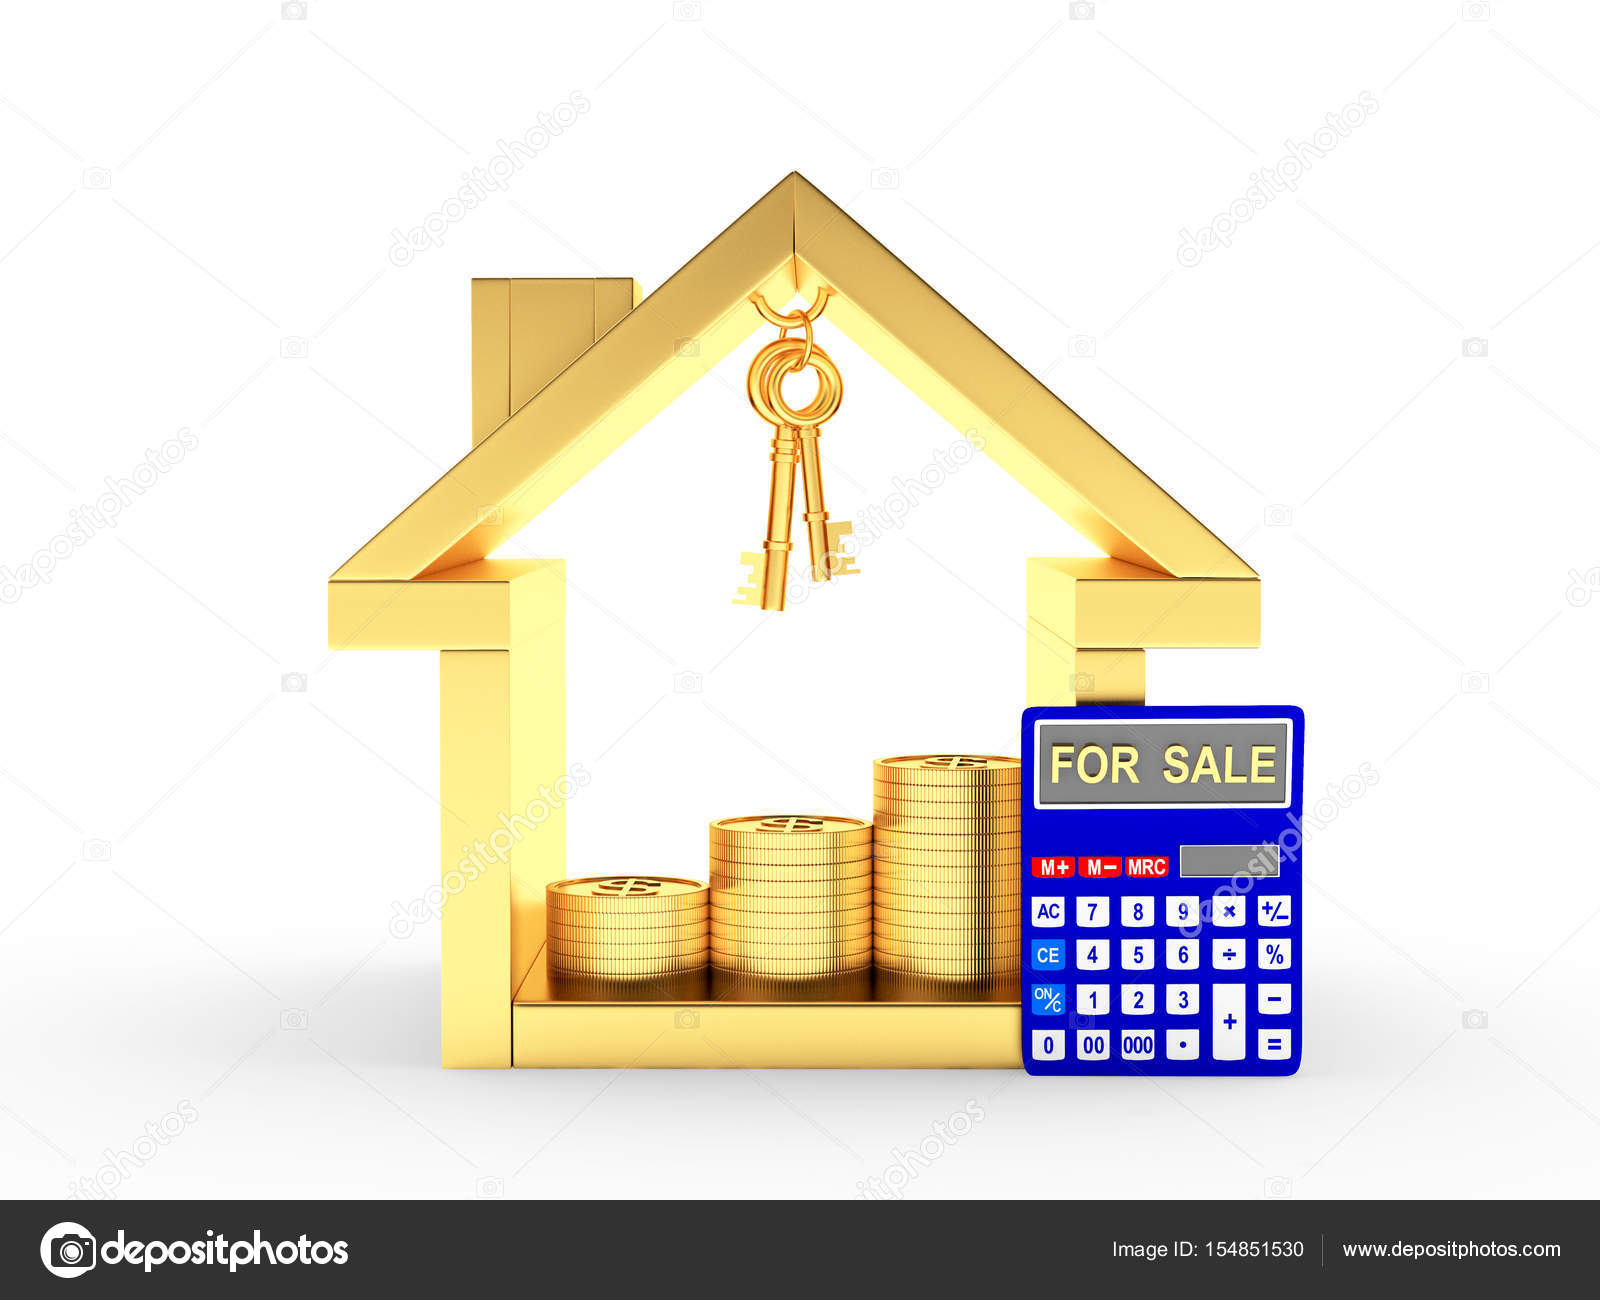 Golden house icon, keys, coins and calculator with the word FOR SALE